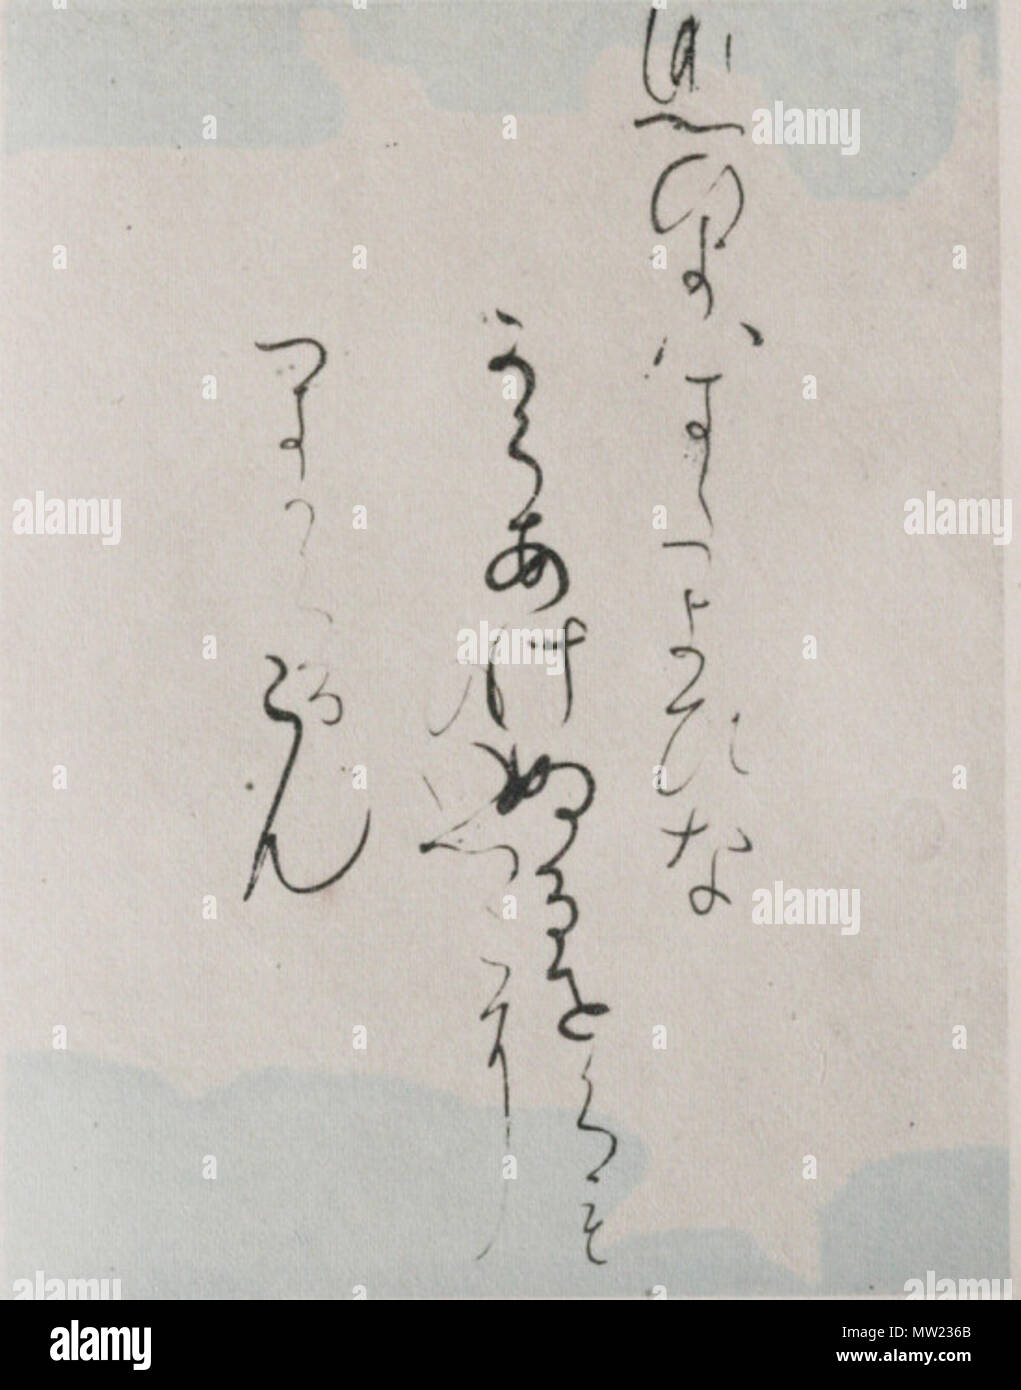 . English: MASU-SHIKISHI, a calligraphy of a poem by KIYOHARA-FUKAYABU(early 10th century). 13.7 cm height, 11.8cm wide. Ink on ornamented paper. 日本語: 升色紙 清原深養父集の一部 . 12th century. Anonymous 12th century, Japan 405 MASU SHIKISHI - Stock Image